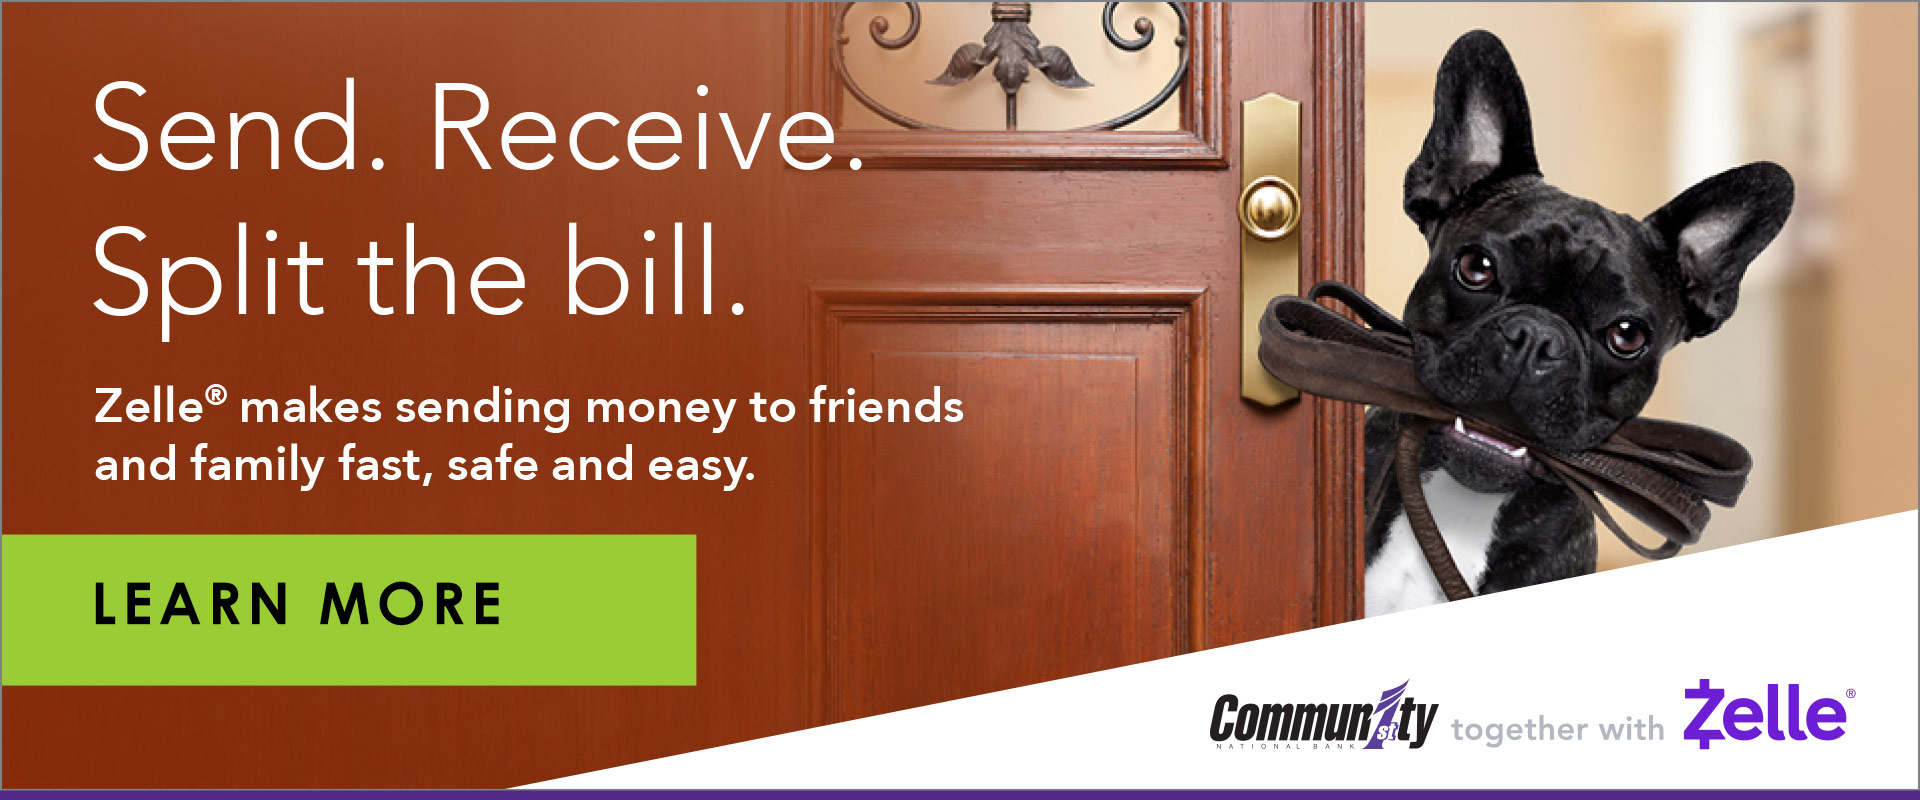 Send. Receive. Split the bill. Zelle® makes sending money to friends and family fast, safe and easy. Learn More.